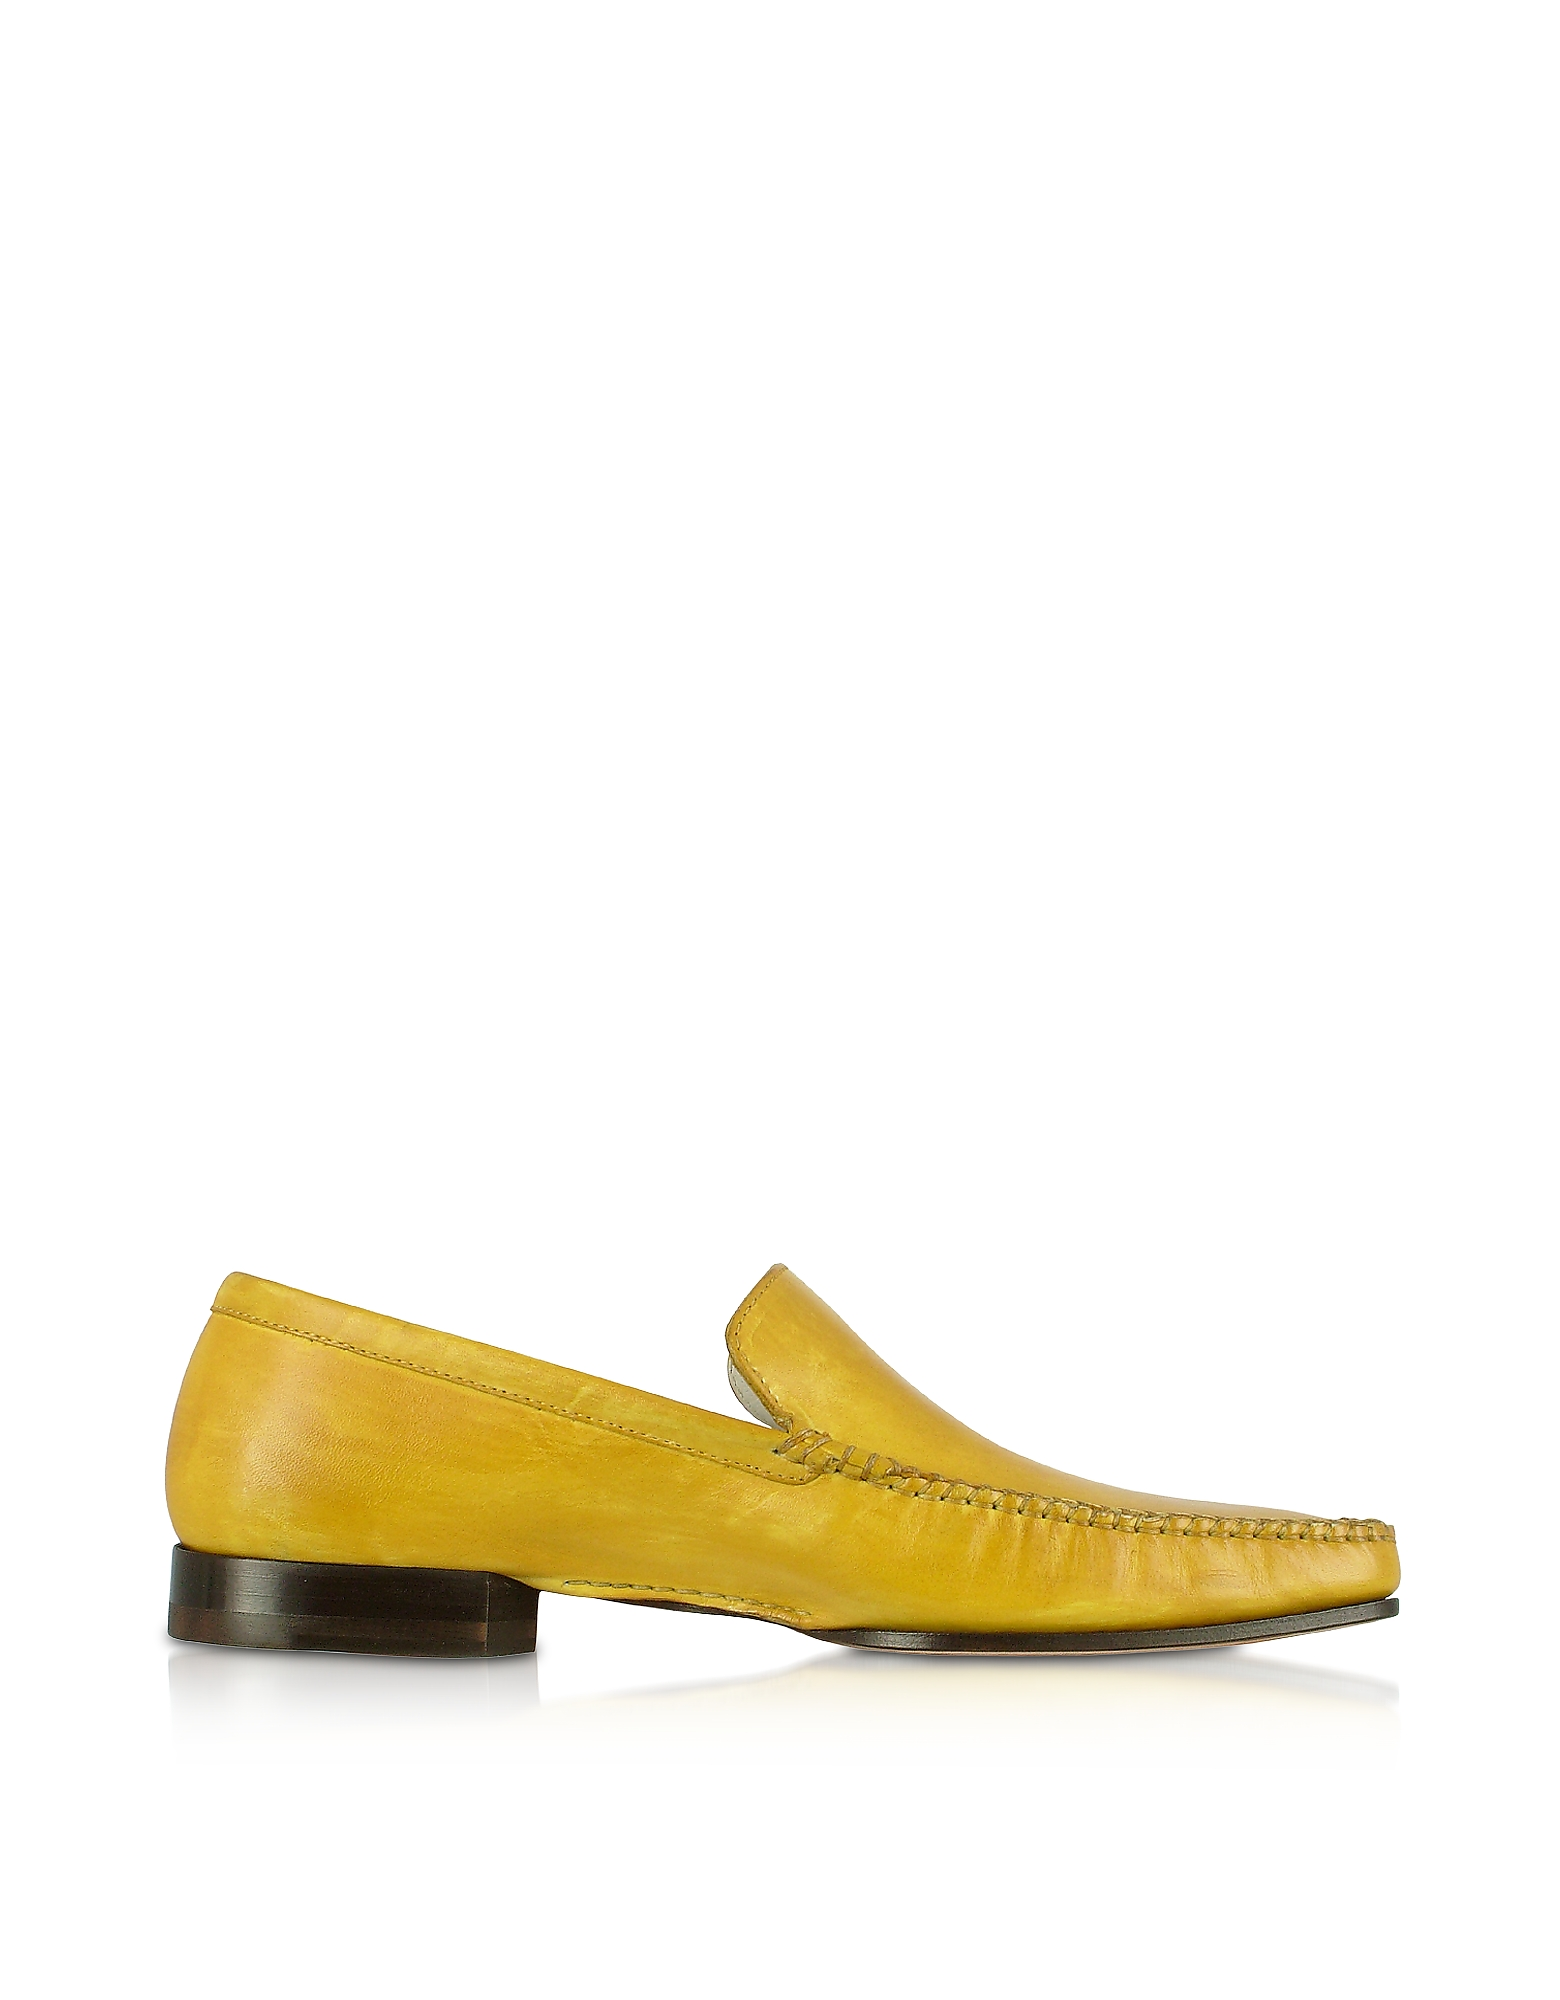 Pakerson Designer Shoes, Yellow Italian Handmade Leather Loafer Shoes